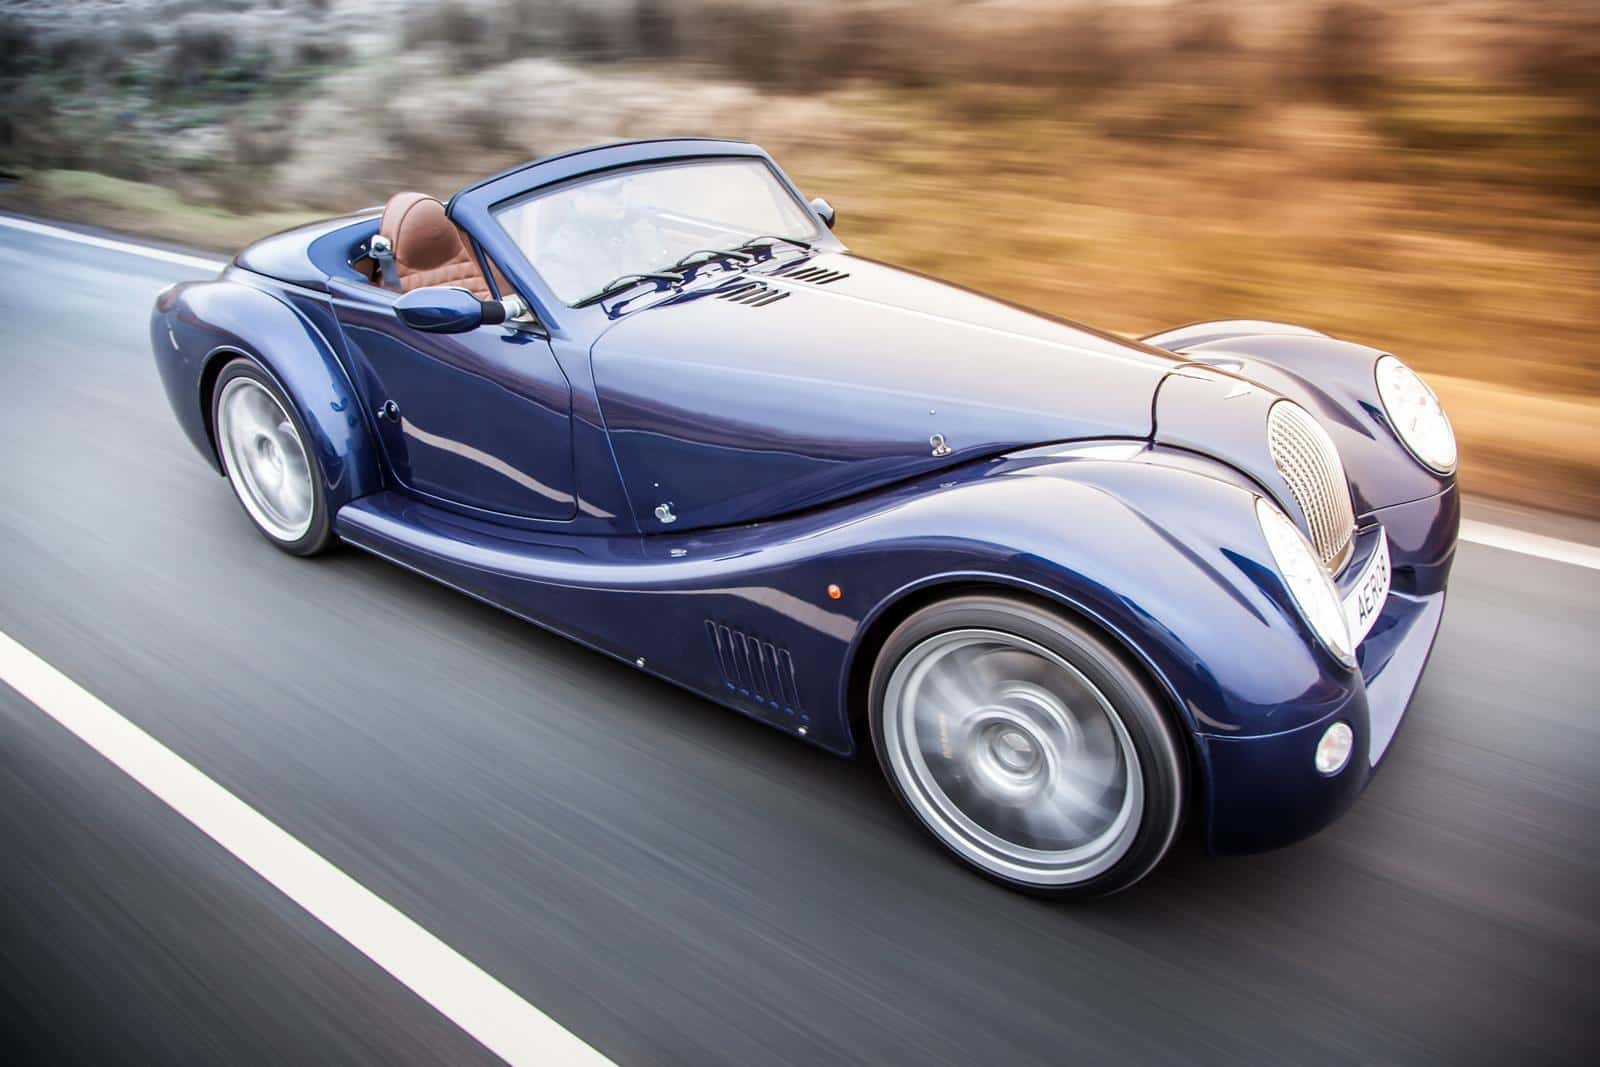 Morgan Showcases Stylish New Aero 8 Supercar There's everything from aluminum chassis details to the finer. morgan showcases stylish new aero 8